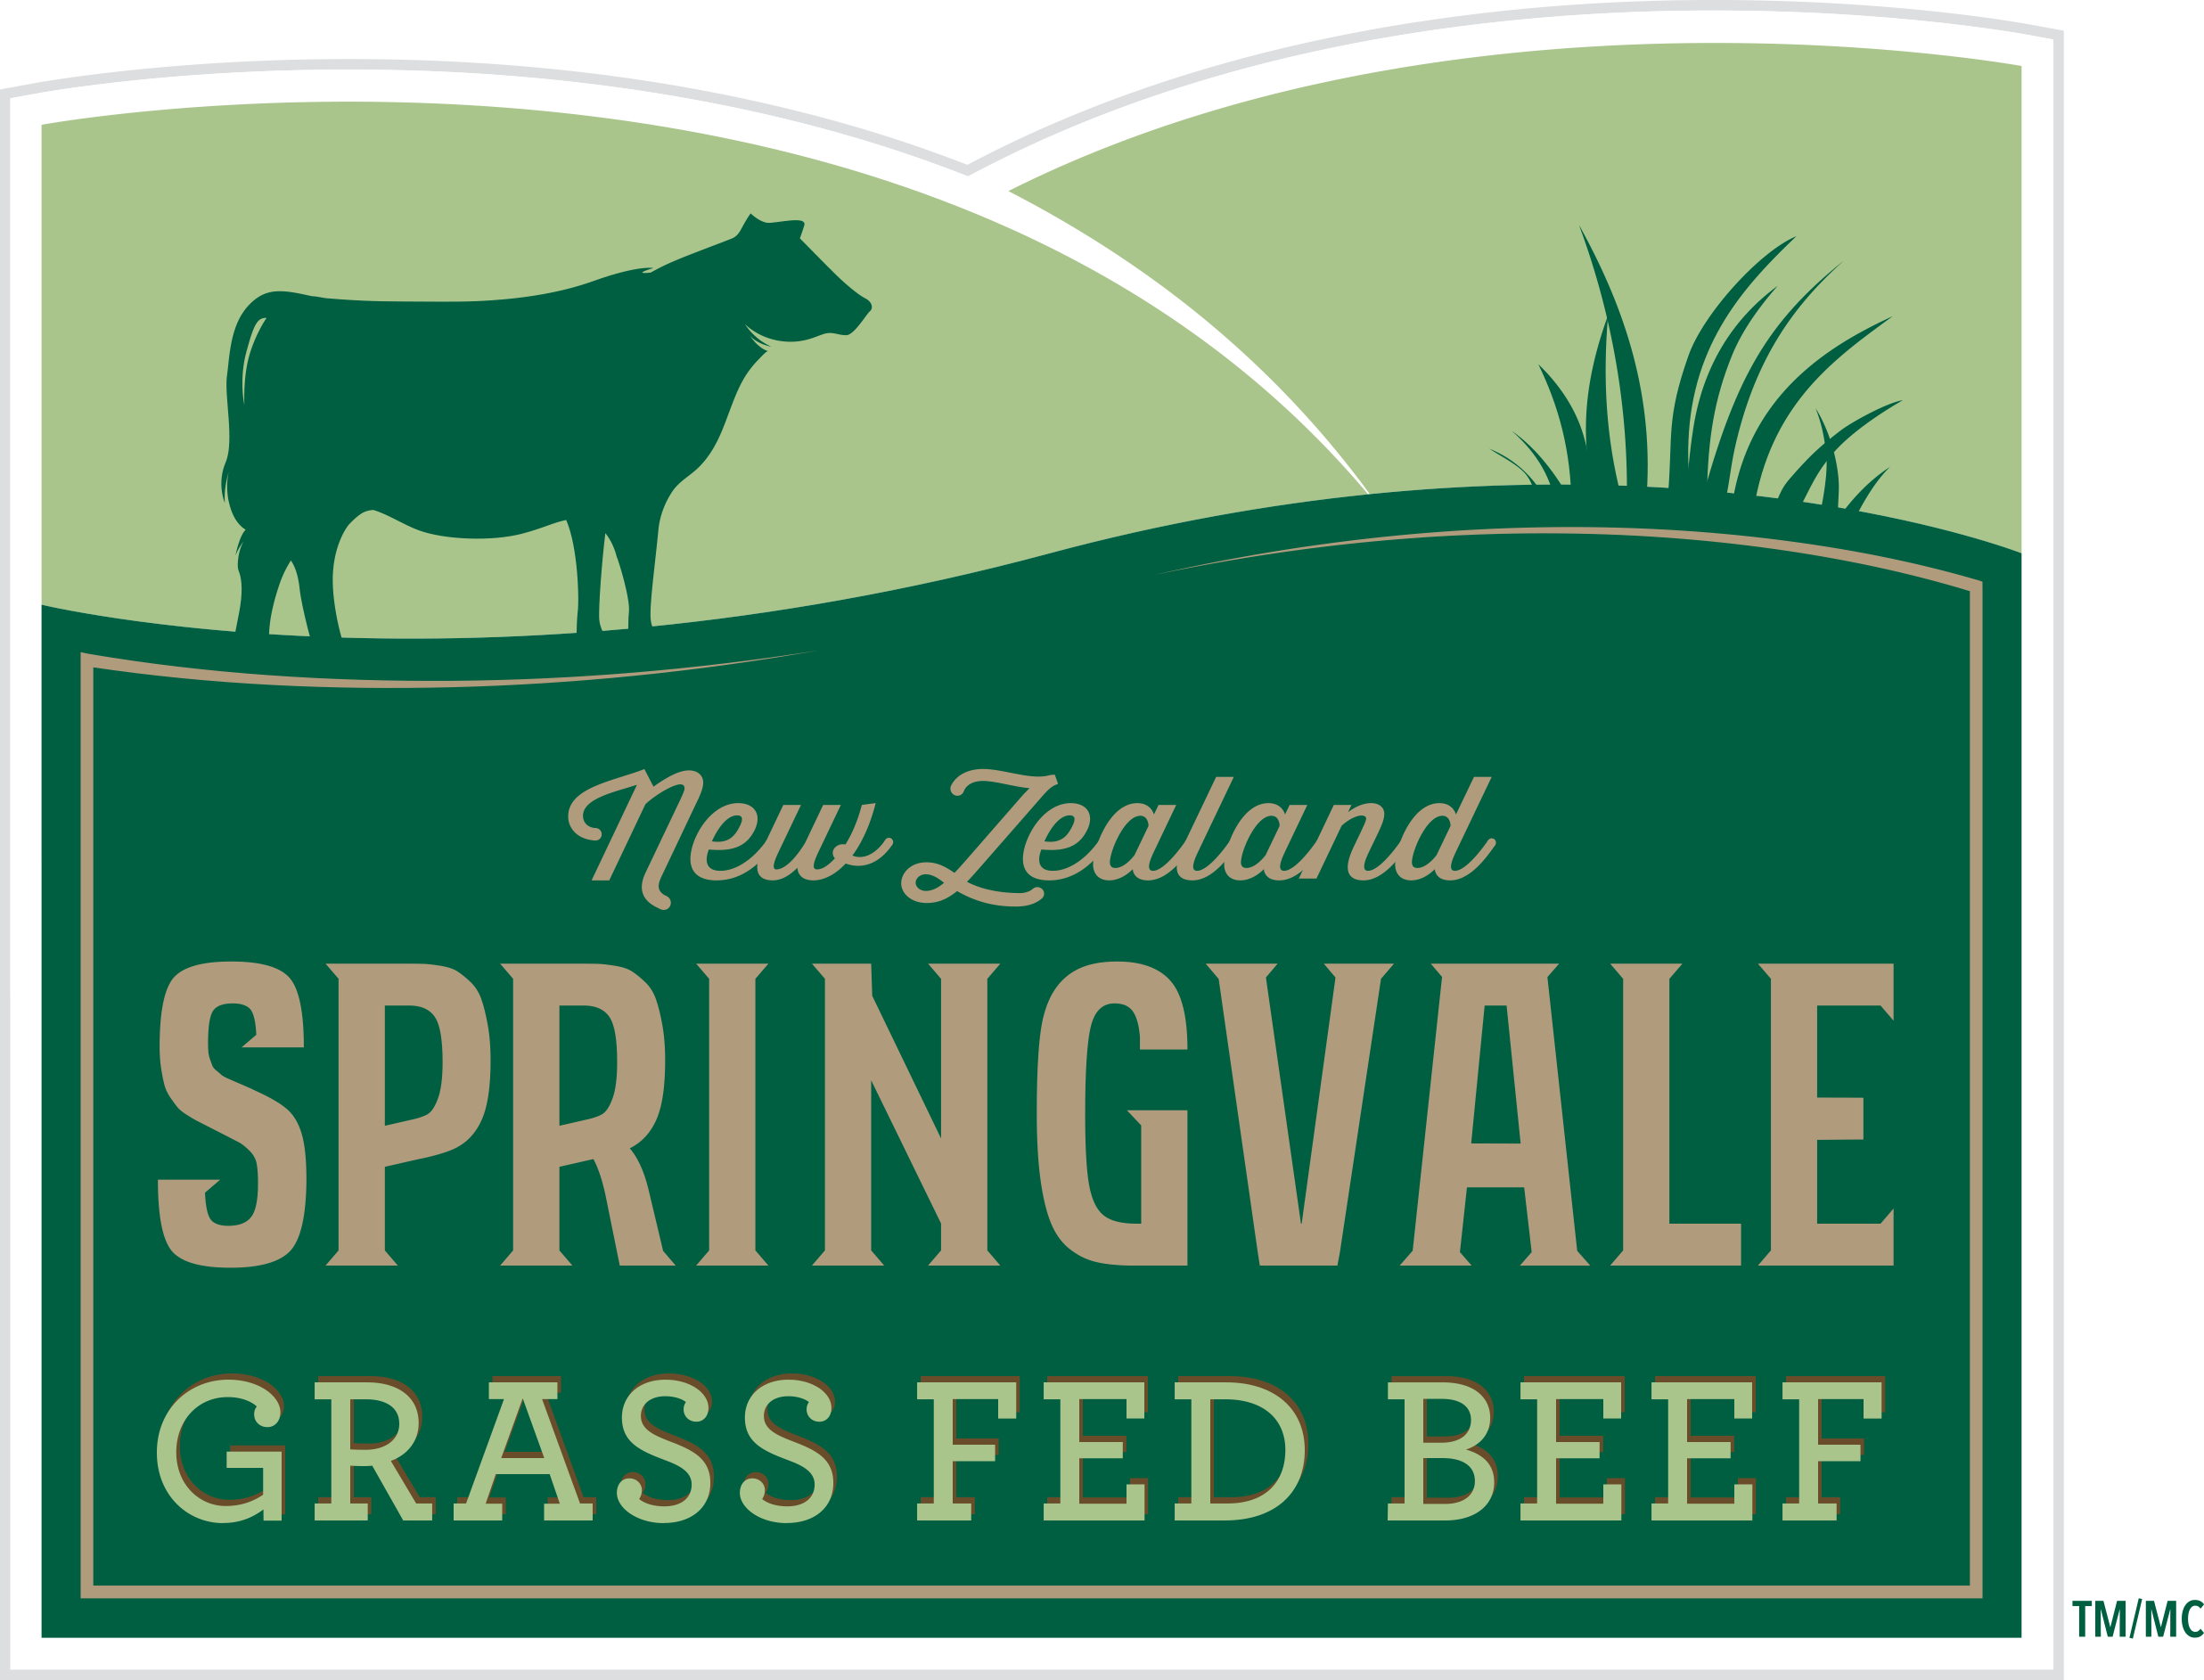 NZ Springvale Grass Fed Beef